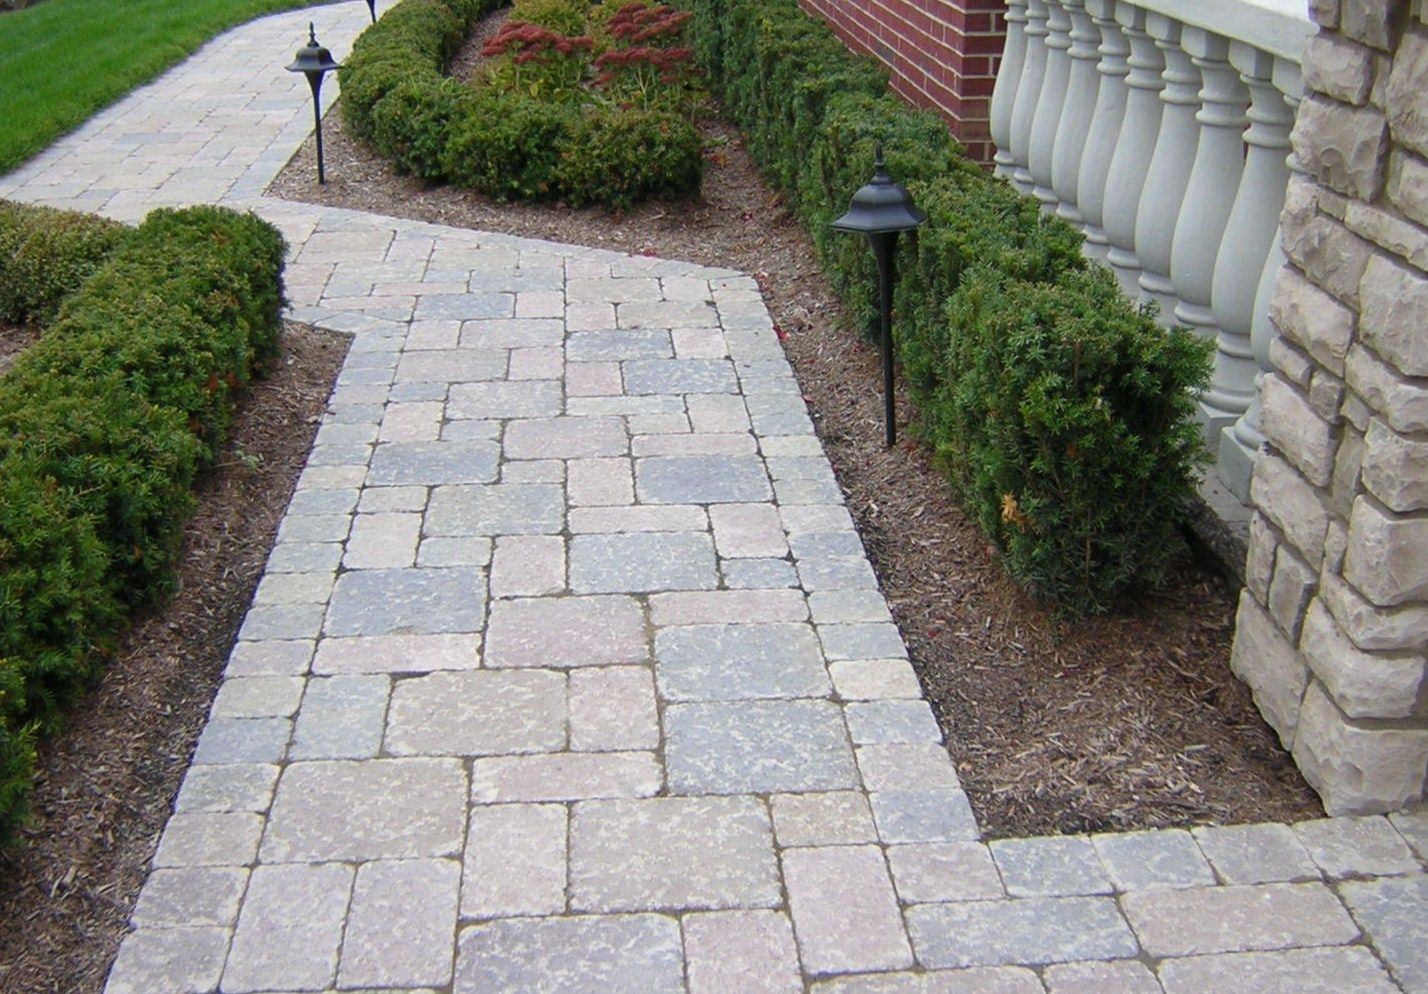 Stone walkway designs for homes with green lush plants and green ...